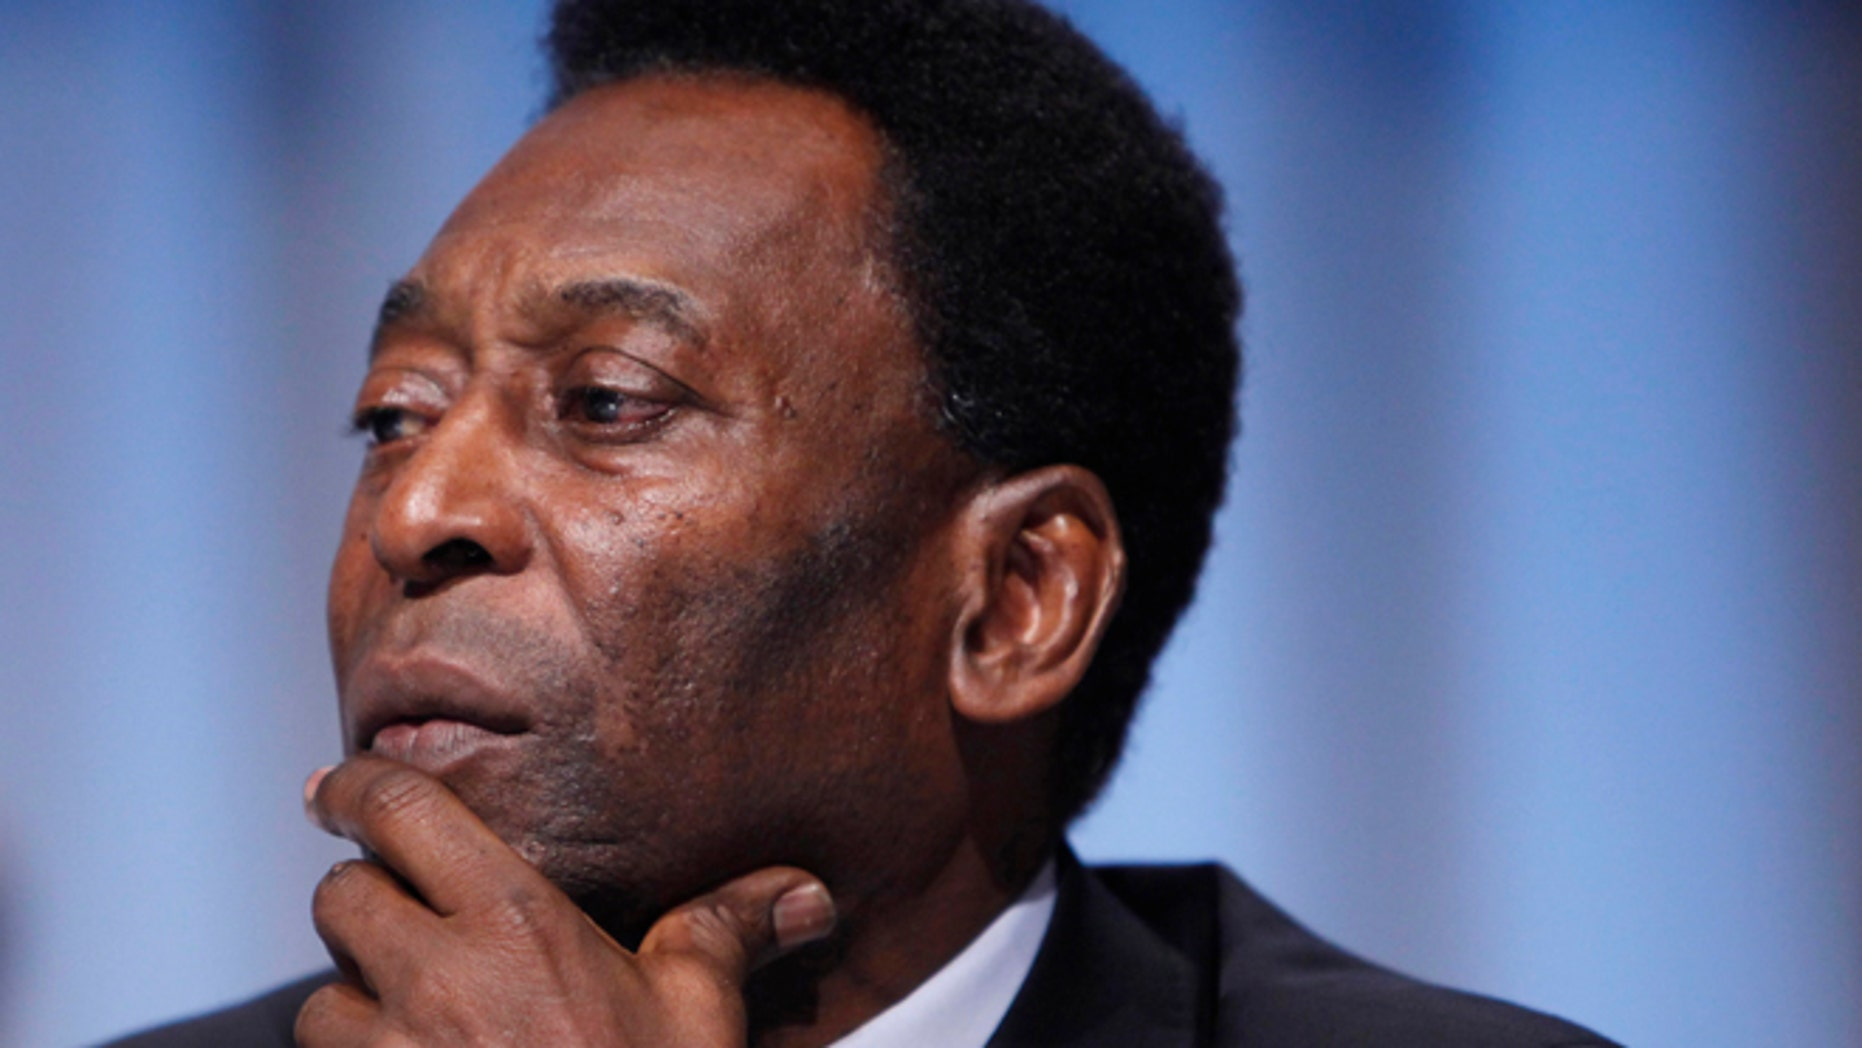 COPENHAGEN, DENMARK - OCTOBER 2:  Brazilian soccer legend Pele, who accompanied President Luiz Inacio Lula da Silva, listens during questioning at the Rio de Janeiro 2016 bid presentation during the 121st International Olympic Committee session at the Bella Centeron October 2, 2009 in Copenhagen, Denmark. The 121st session of the International Olympic Committee (IOC) will vote on October 2 on whether Chicago, Tokyo, Rio de Janeiro or Madrid will host the 2016 Olympic Games. (Photo by Charles Dharapak-Pool/Getty Images) *** Local Caption *** Pele